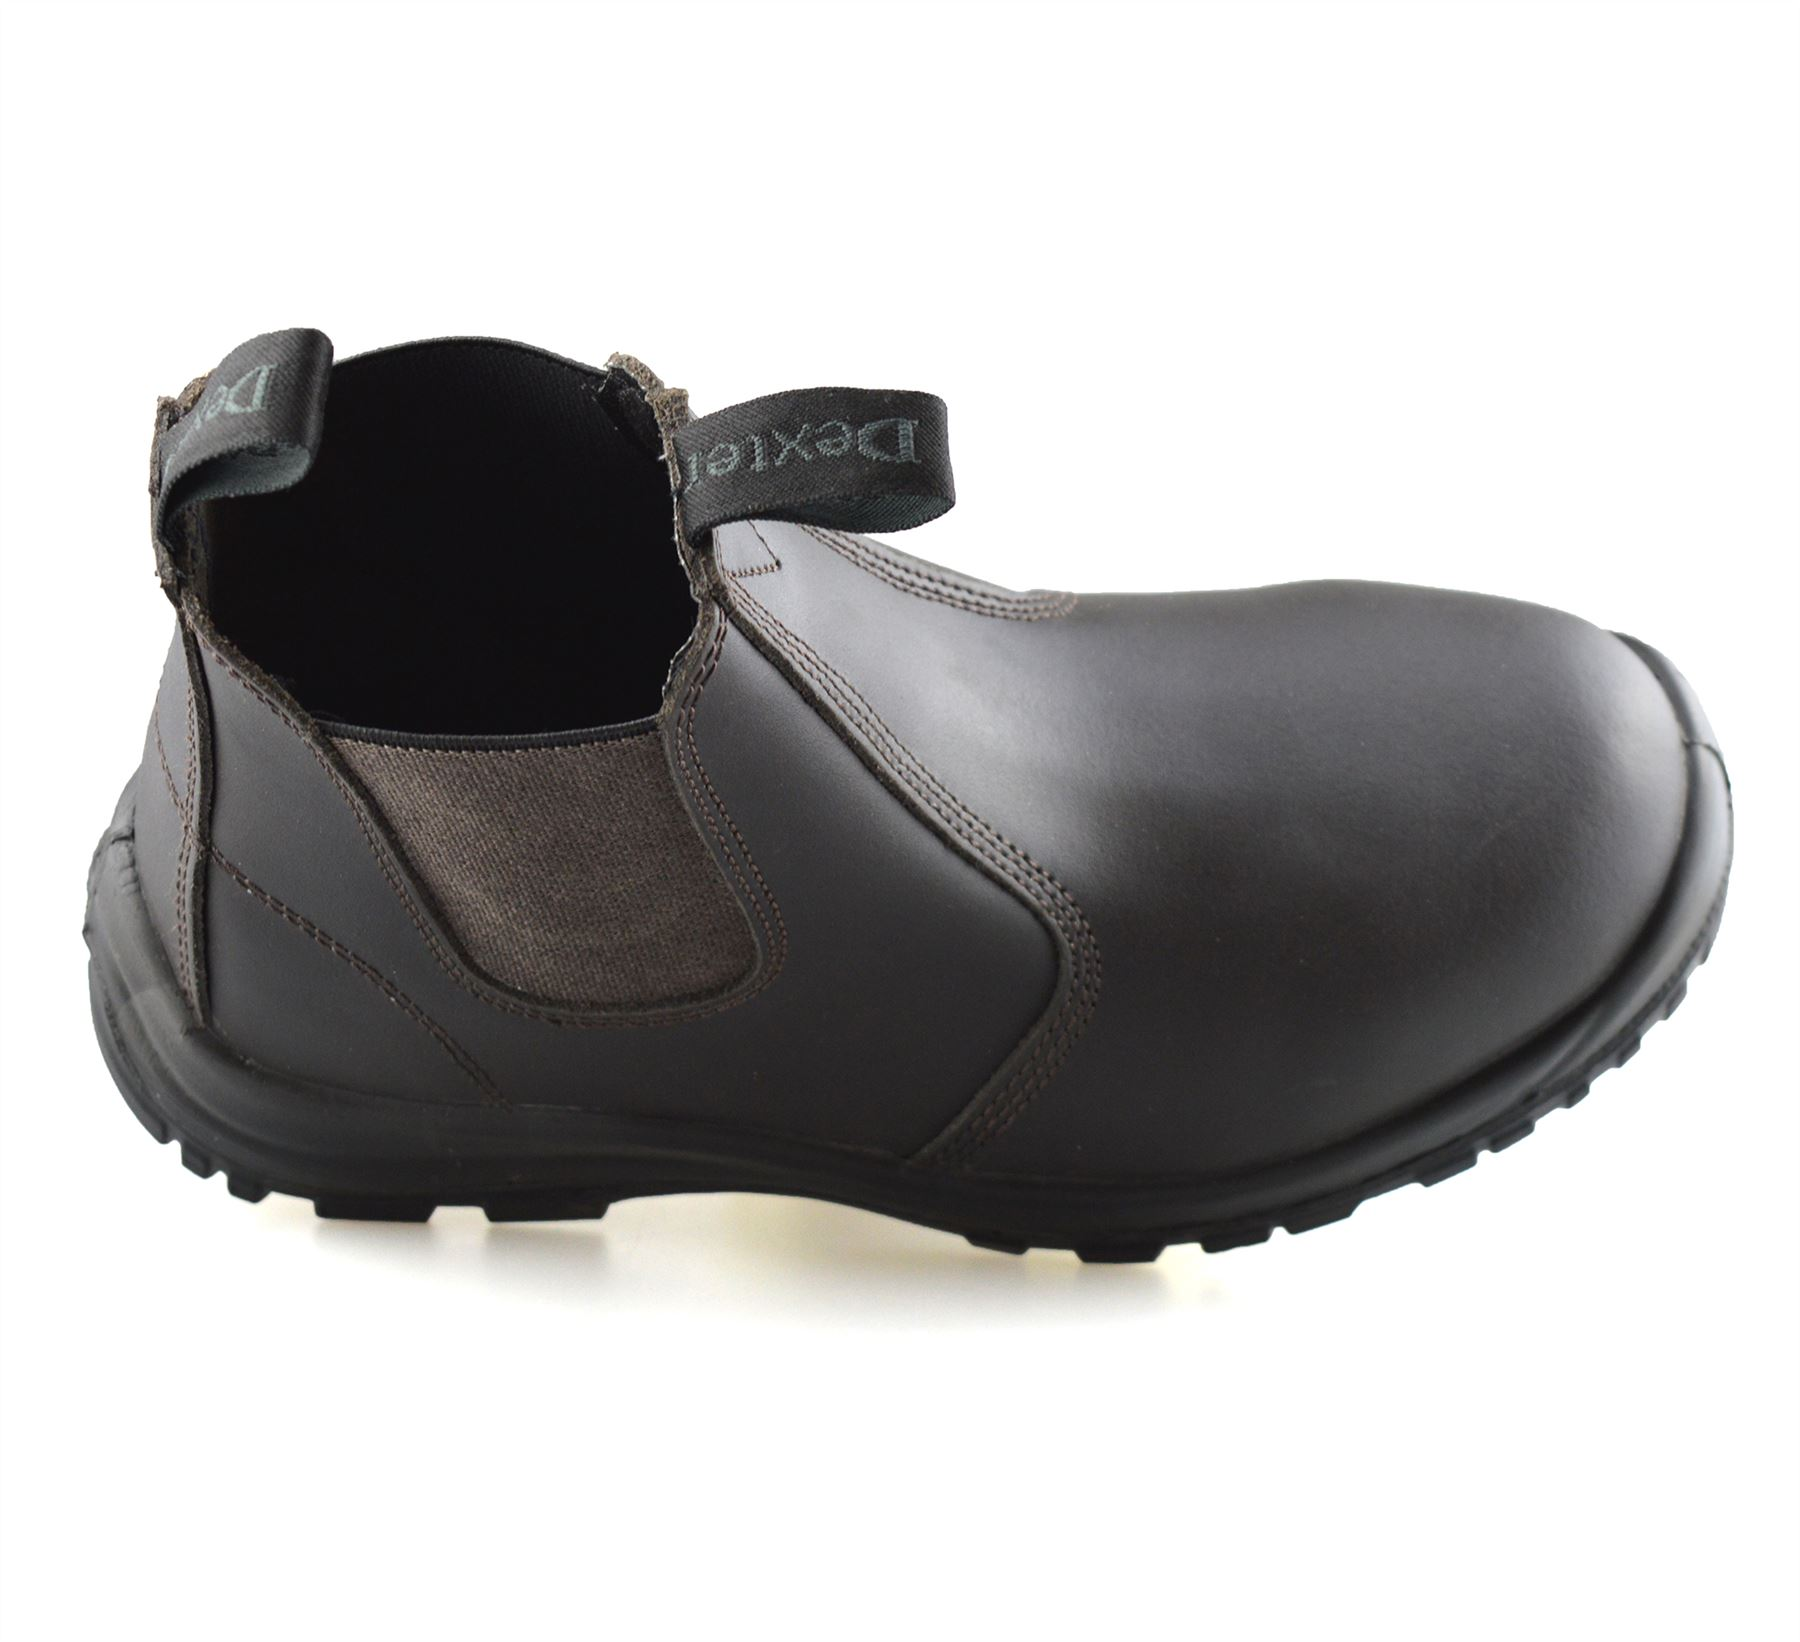 Mens-Leather-Wide-Fit-Chelsea-Ankle-Boots-Casual-Smart-Dealer-Work-Shoes-Size thumbnail 14